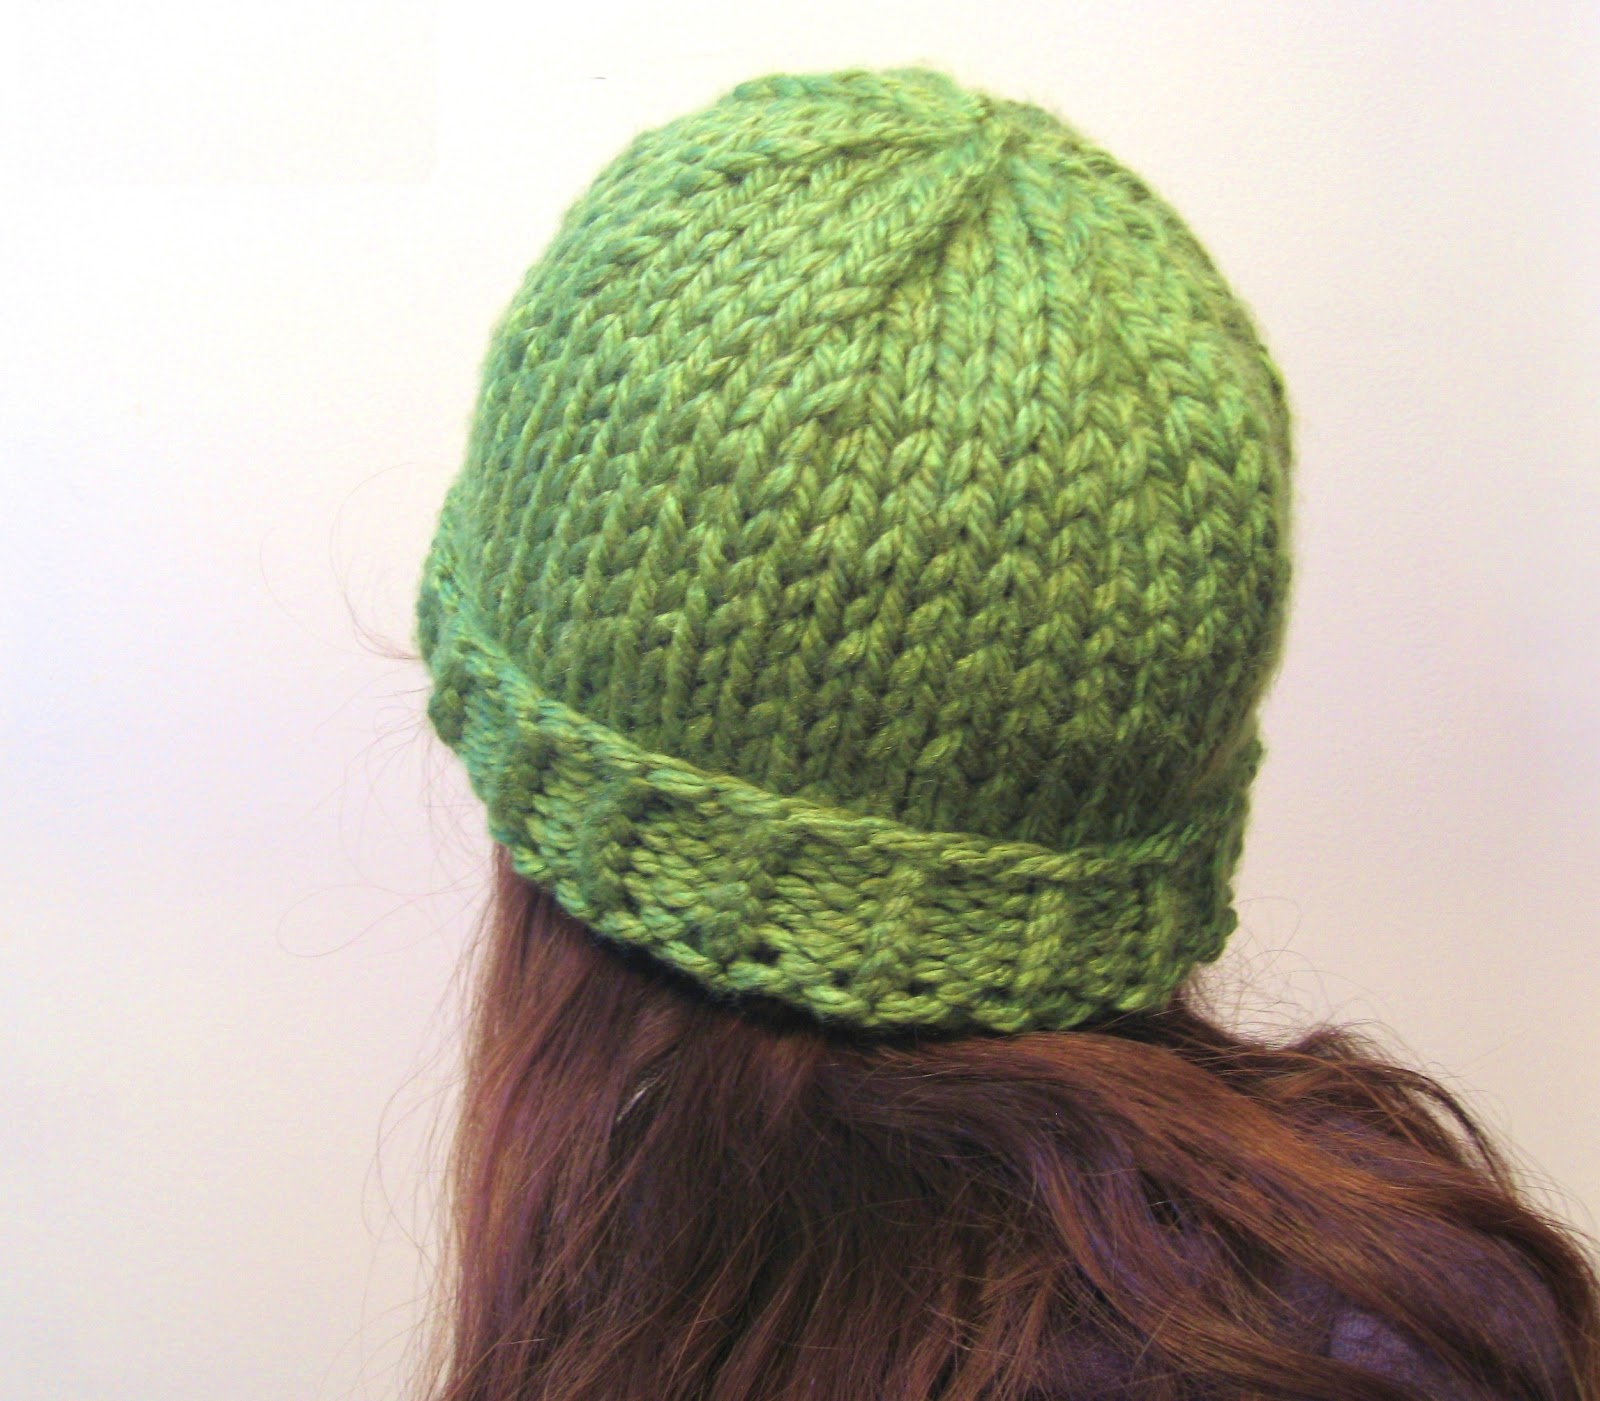 Simple Beanie Hat Knitting Pattern : megan E sass handknits: Free Knitting Pattern: Easy Chunky Knit Beanie Hat